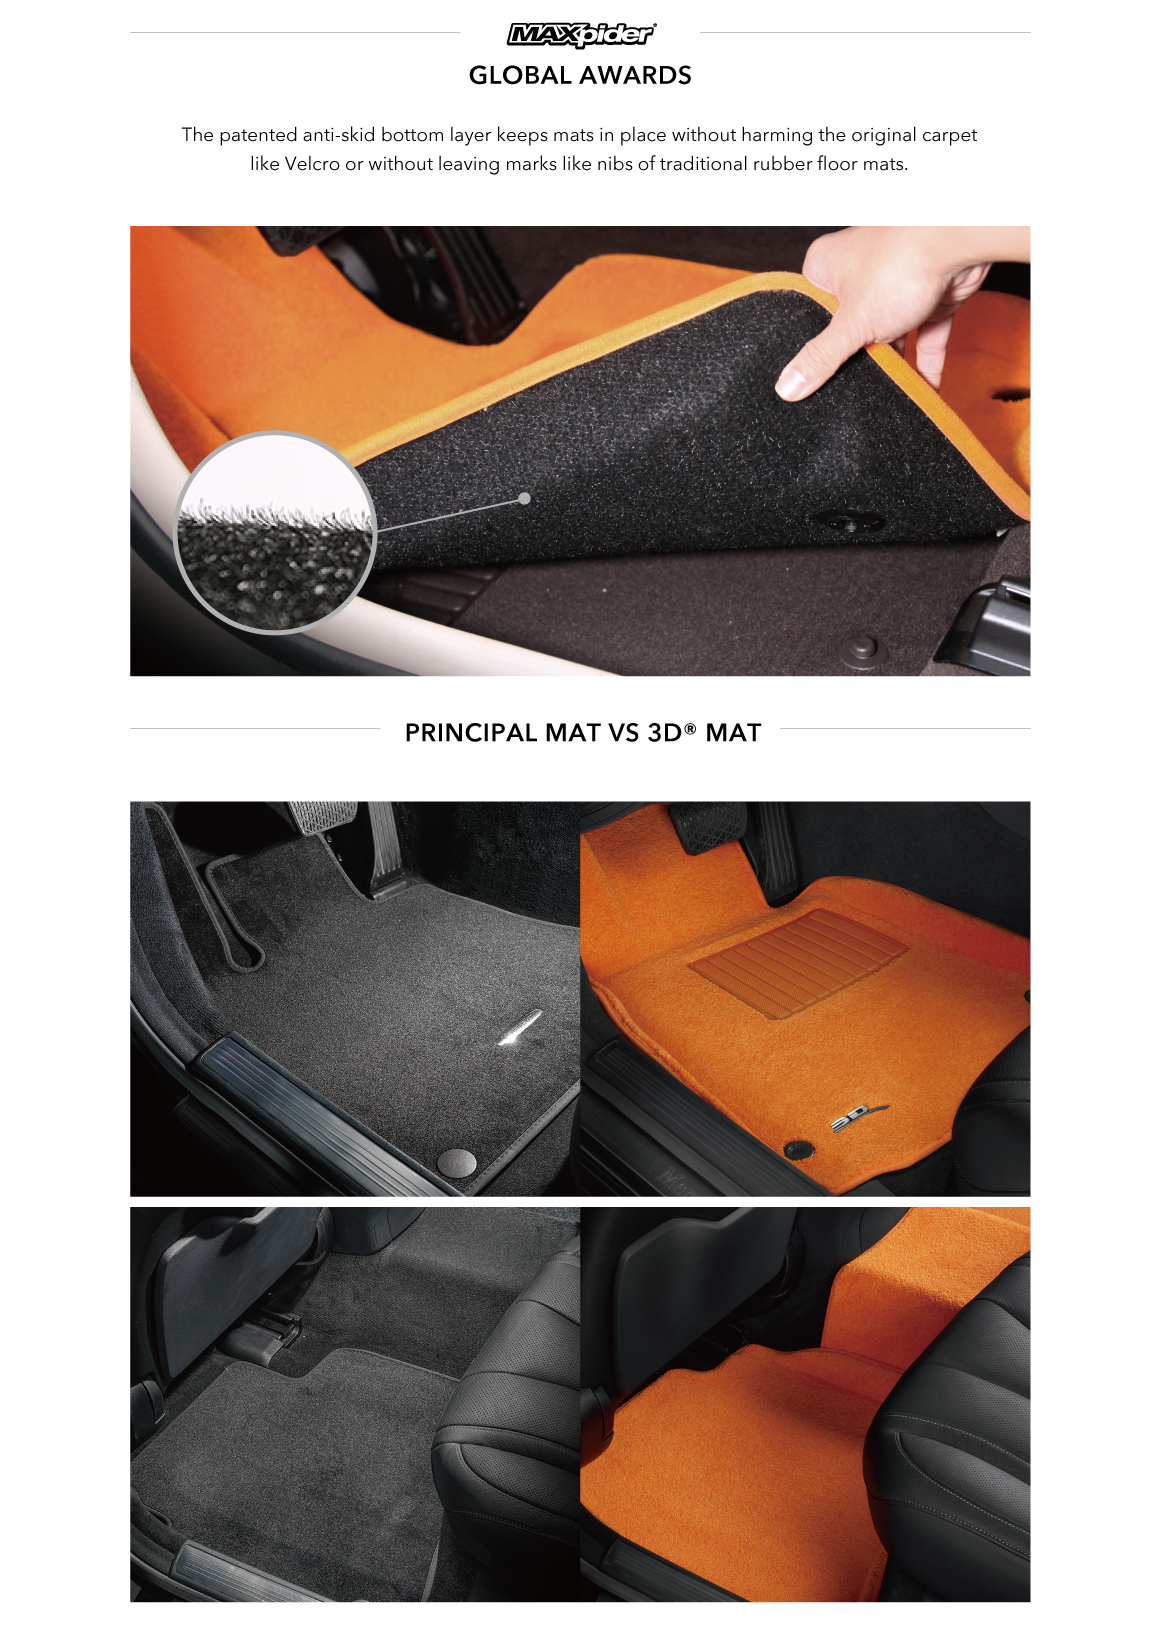 Volvo S80 Award Winning Car Floor Mats